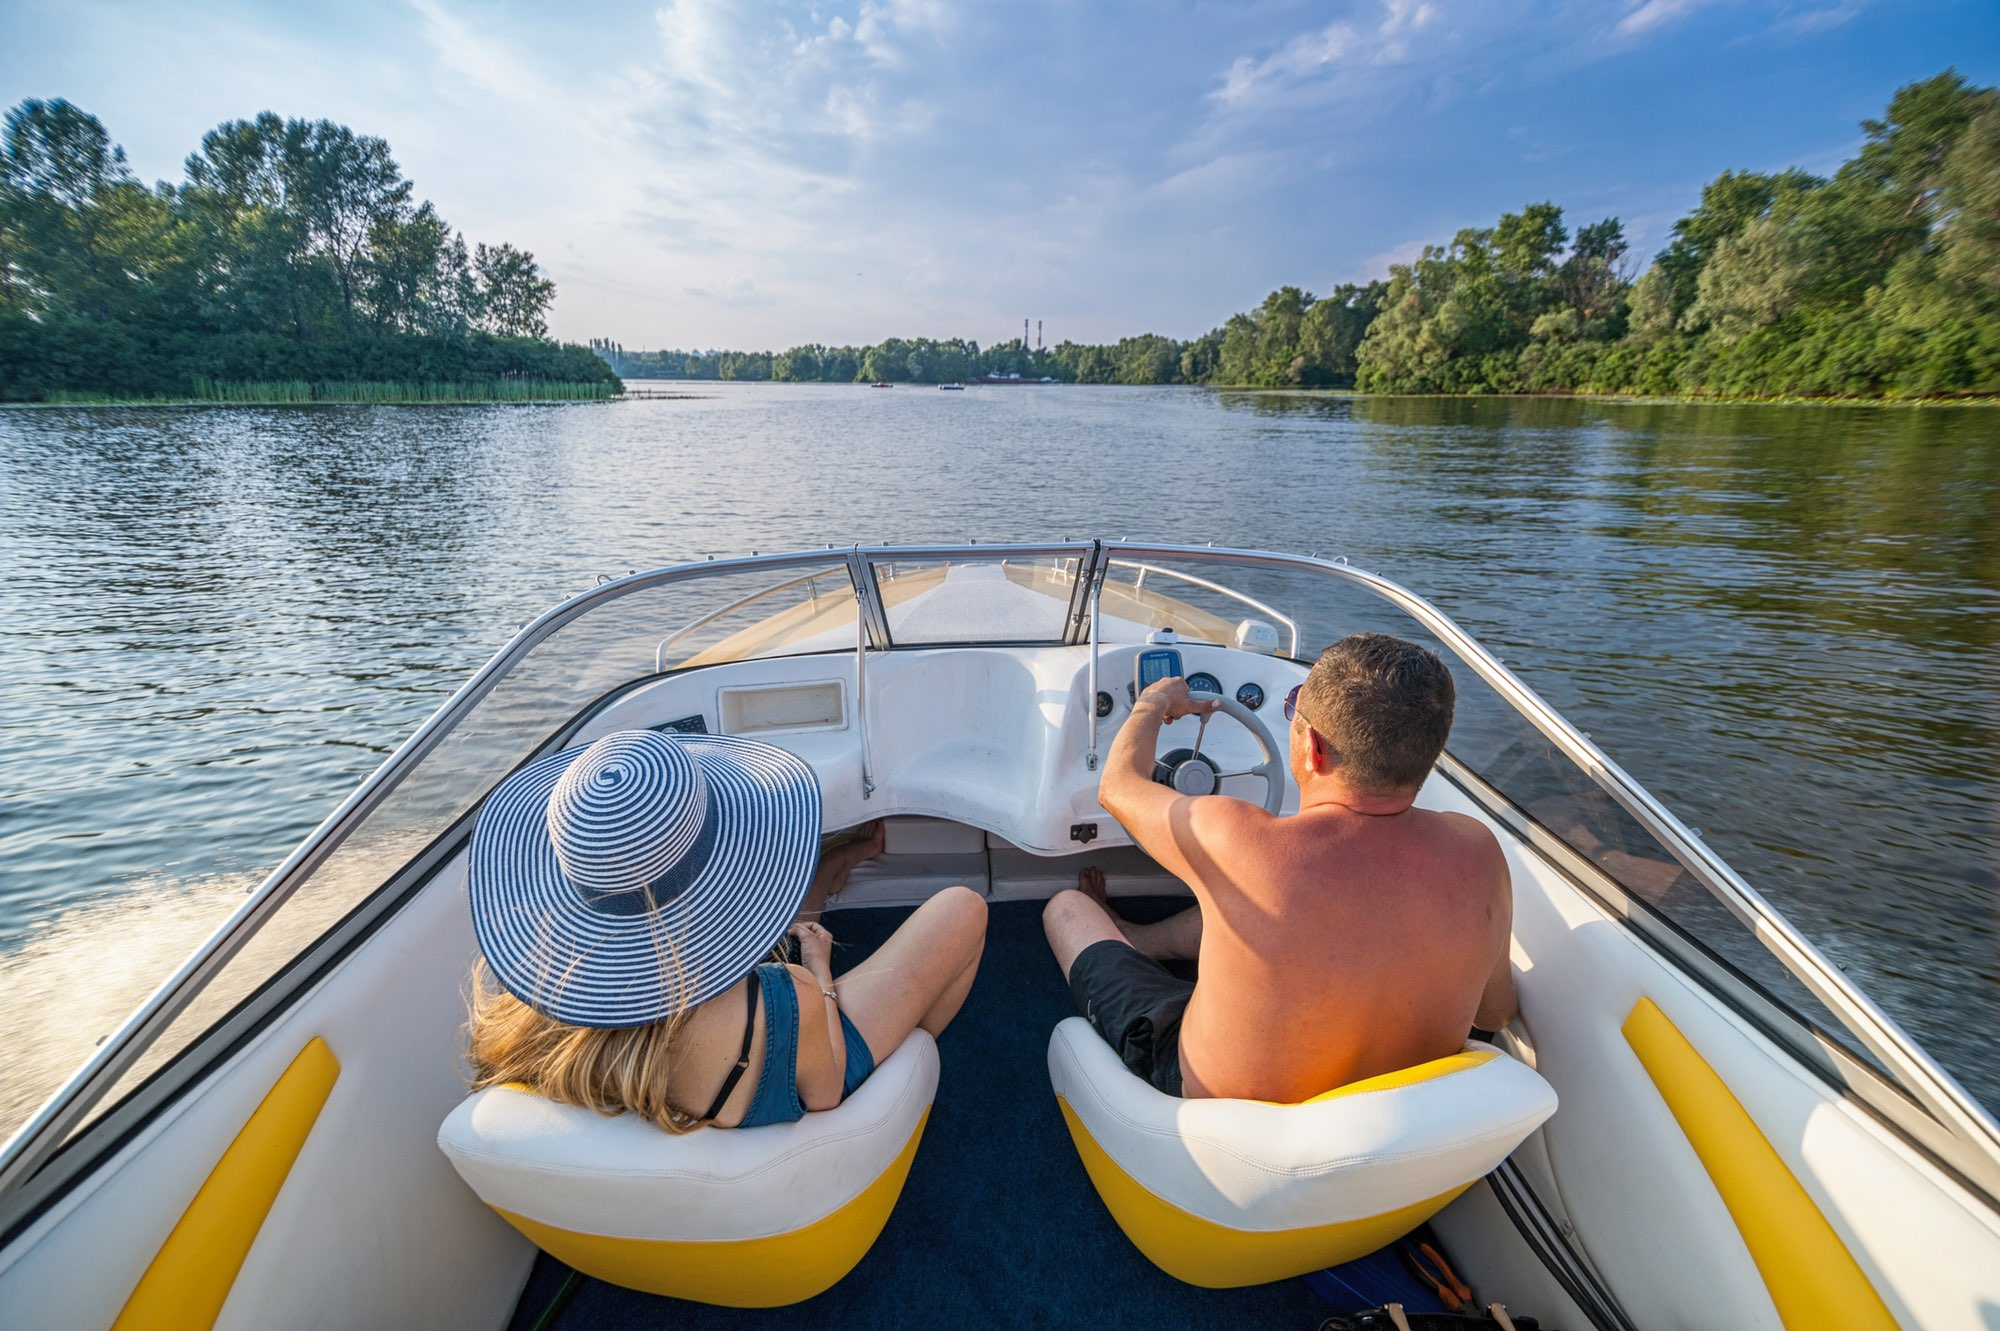 Popular Spots in Jacksonville Boating Area